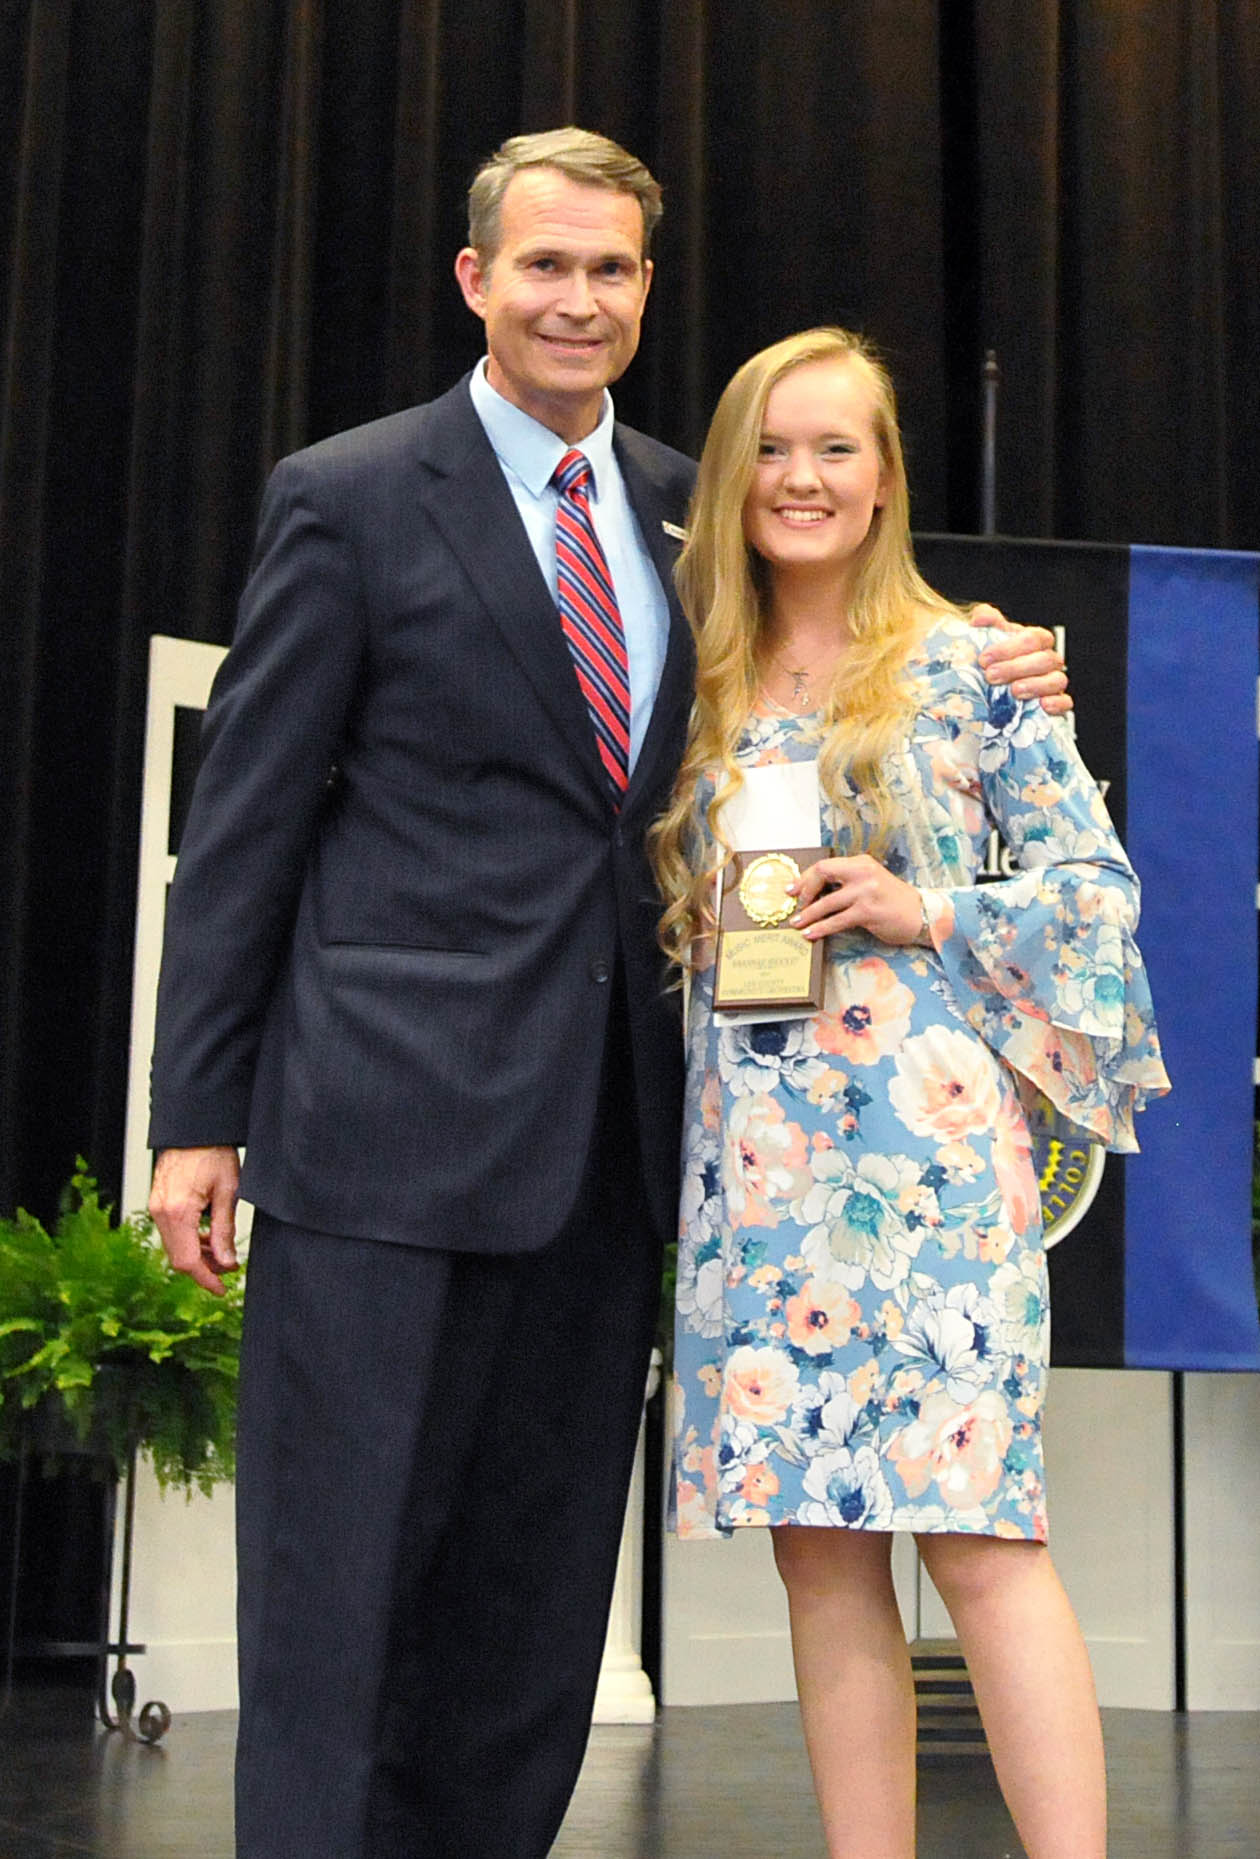 Click to enlarge,  Savannah Shockey (right) is recipient of Central Carolina Community College's Lee County Orchestra Achievement Award. Presenting the award to Shockey is Ken Hoyle, CCCC Vice President of Student Services.